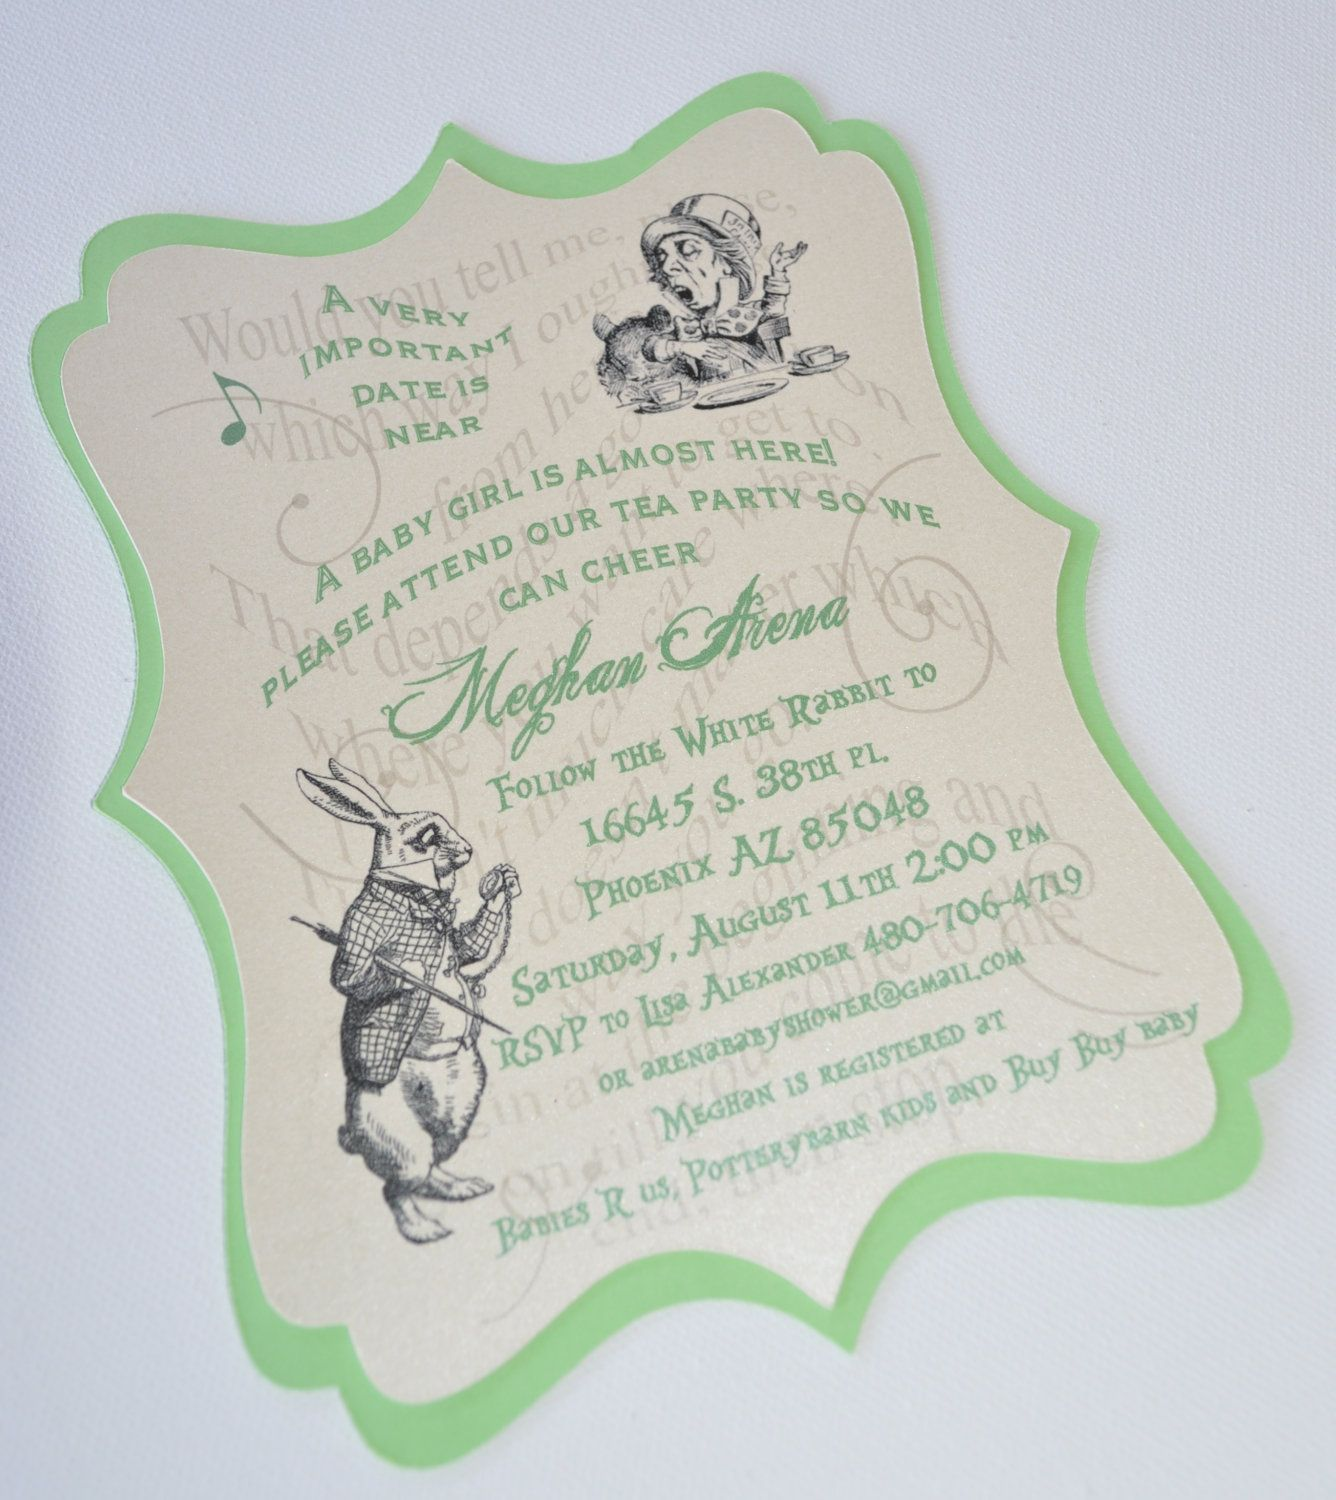 mad hatter teparty invitations pinterest%0A Layered Vintage Alice in Wonderland Mad Hatter Tea Party Invites           via Etsy